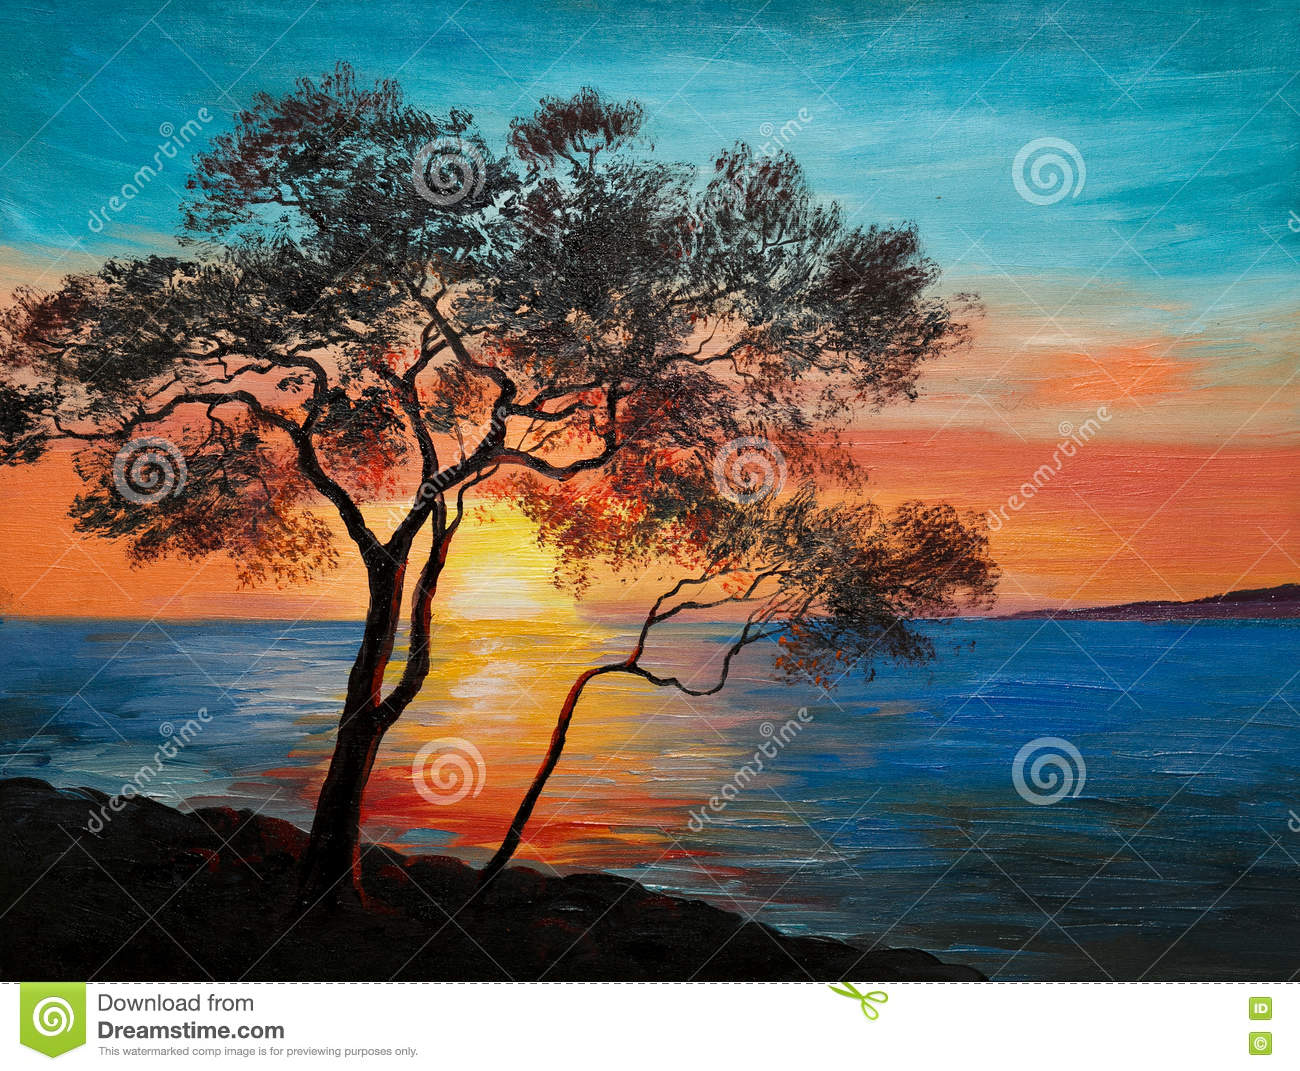 peinture l 39 huile sur la toile arbre pr s du lac au coucher du soleil illustration stock. Black Bedroom Furniture Sets. Home Design Ideas